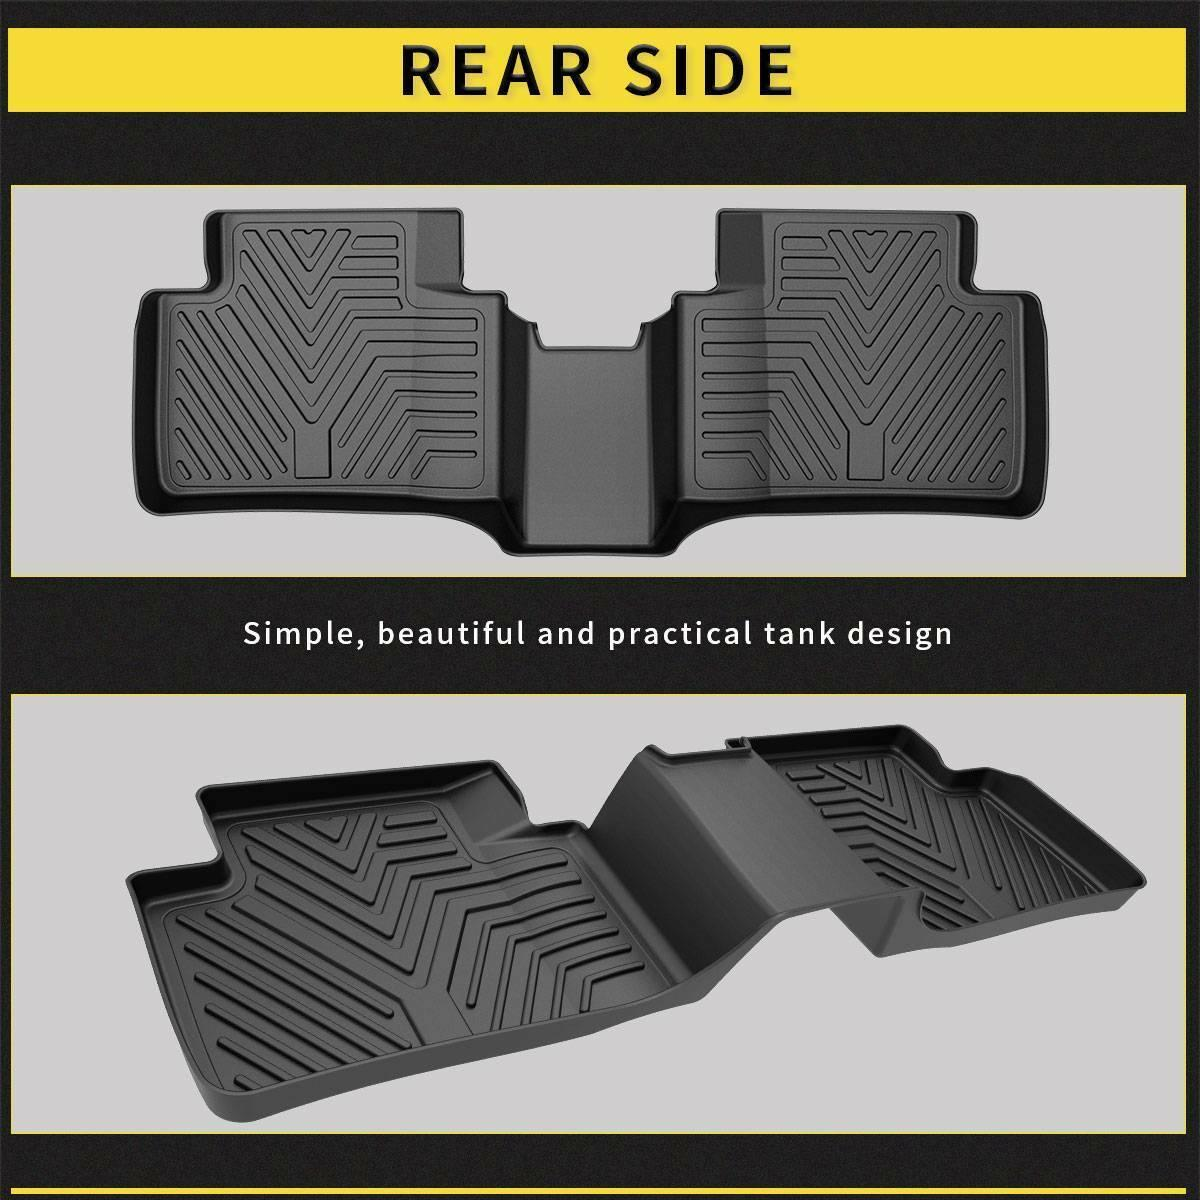 Floor Liners for 2016-2021 Honda Civic Sedan/Hatchback or Type R, Floor Mats 1st & 2nd Row All Weather Protection, Black